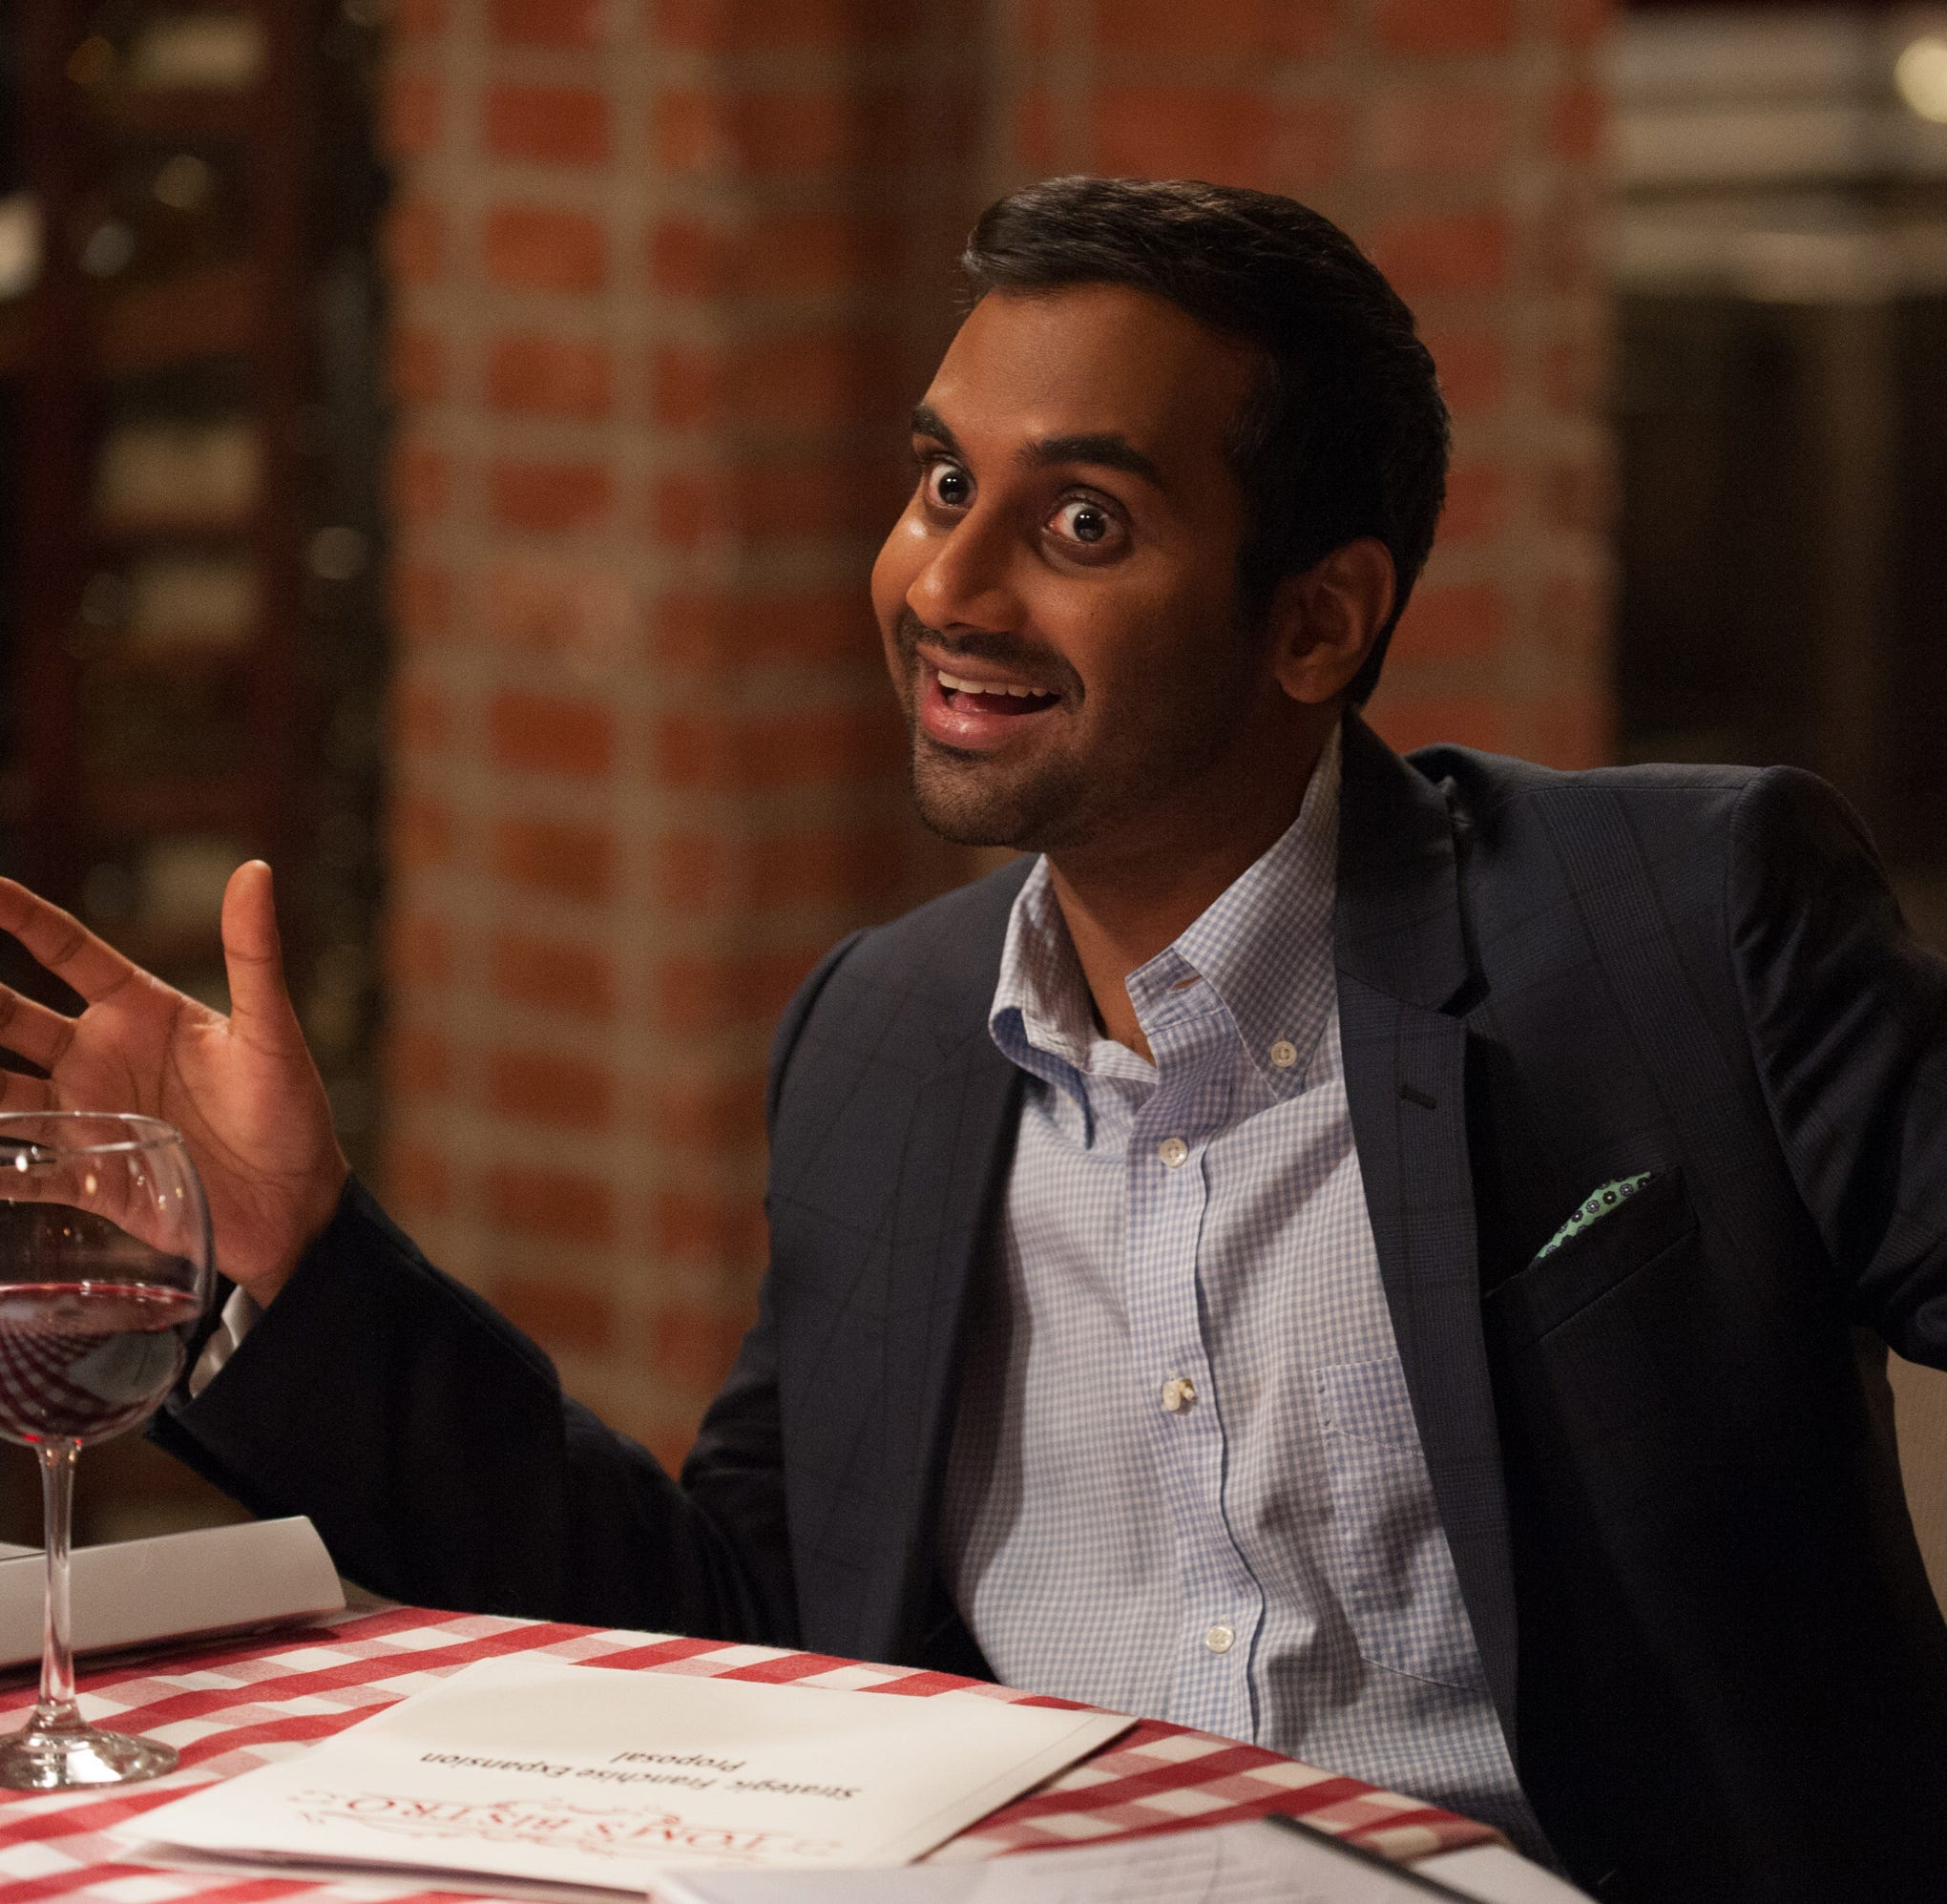 Aziz Ansari in Port Chester and the pizza swastika experiment